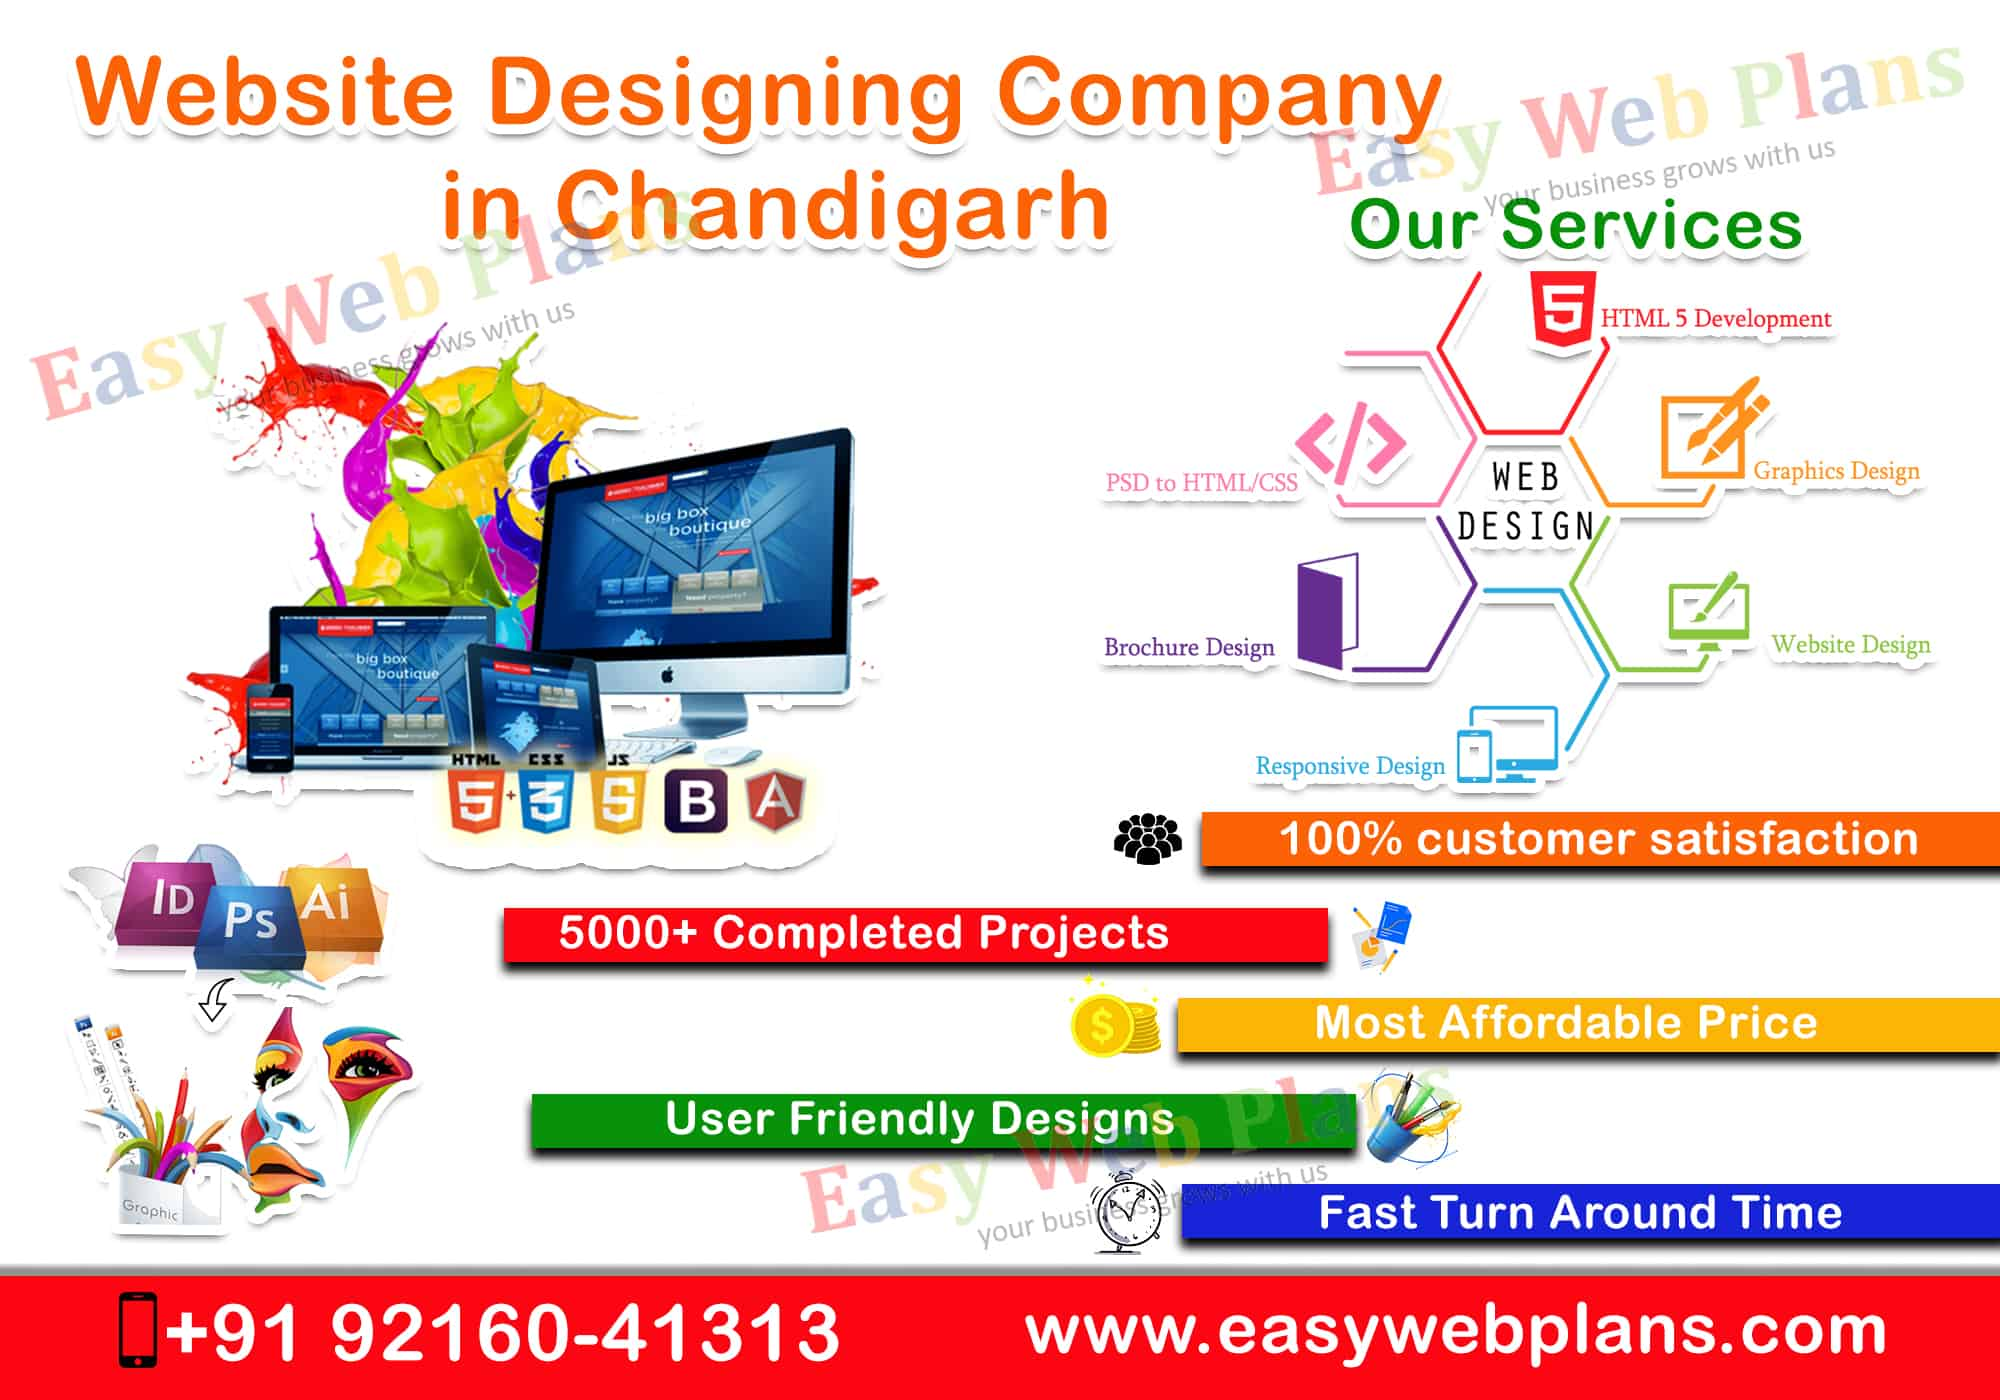 Website Designing Company in Chandigarh